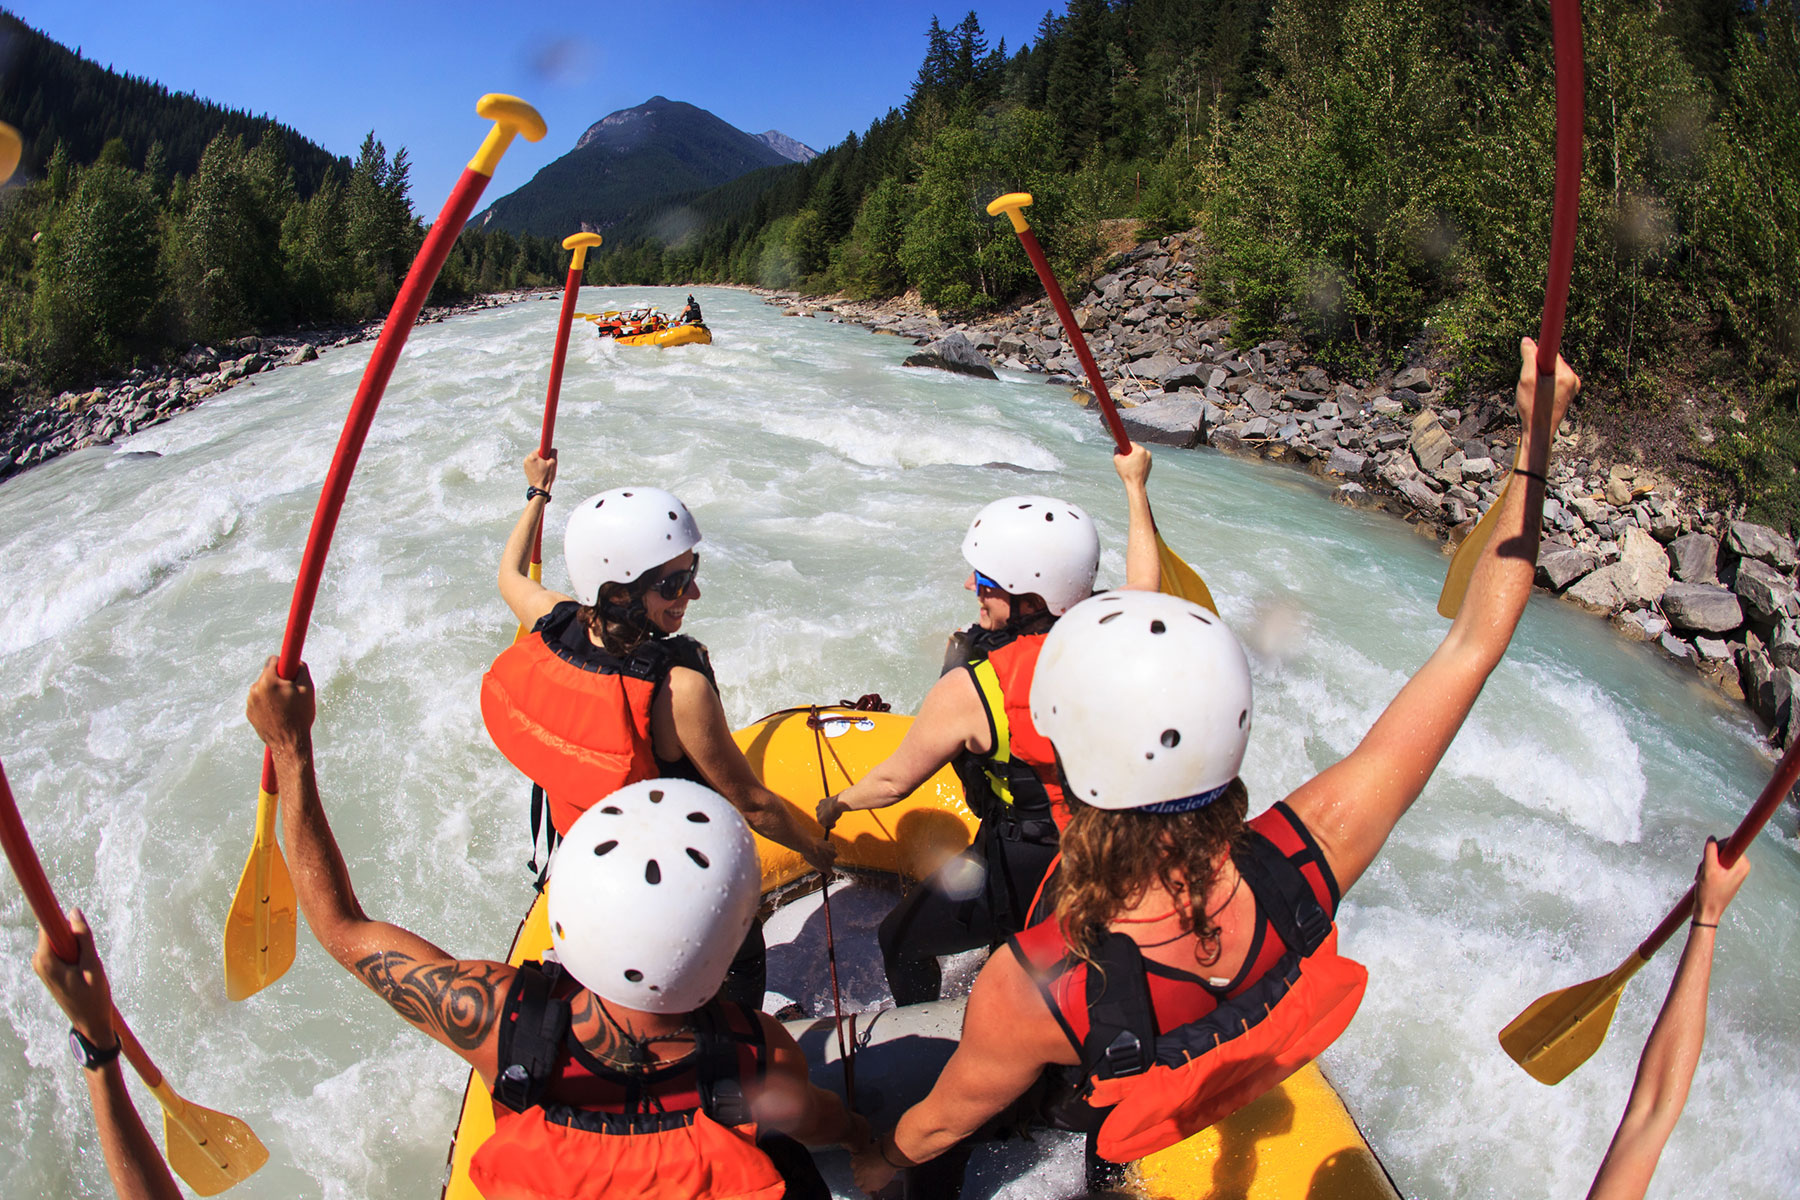 Rafters standing up to go through some rapids while white water rafting the Kicking Horse River.